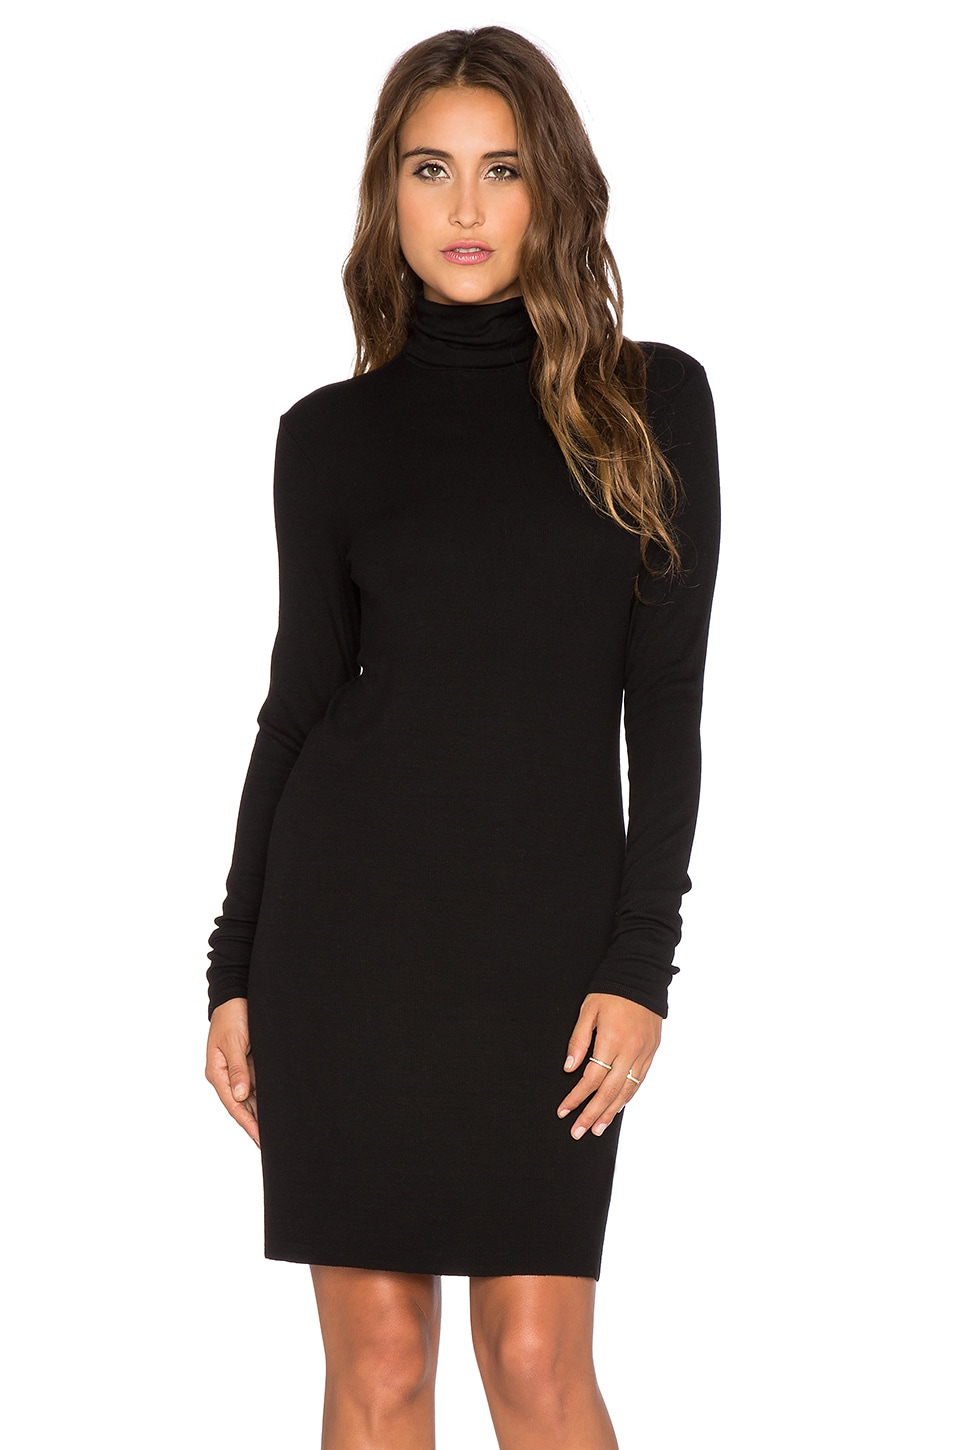 Chic turtleneck dress